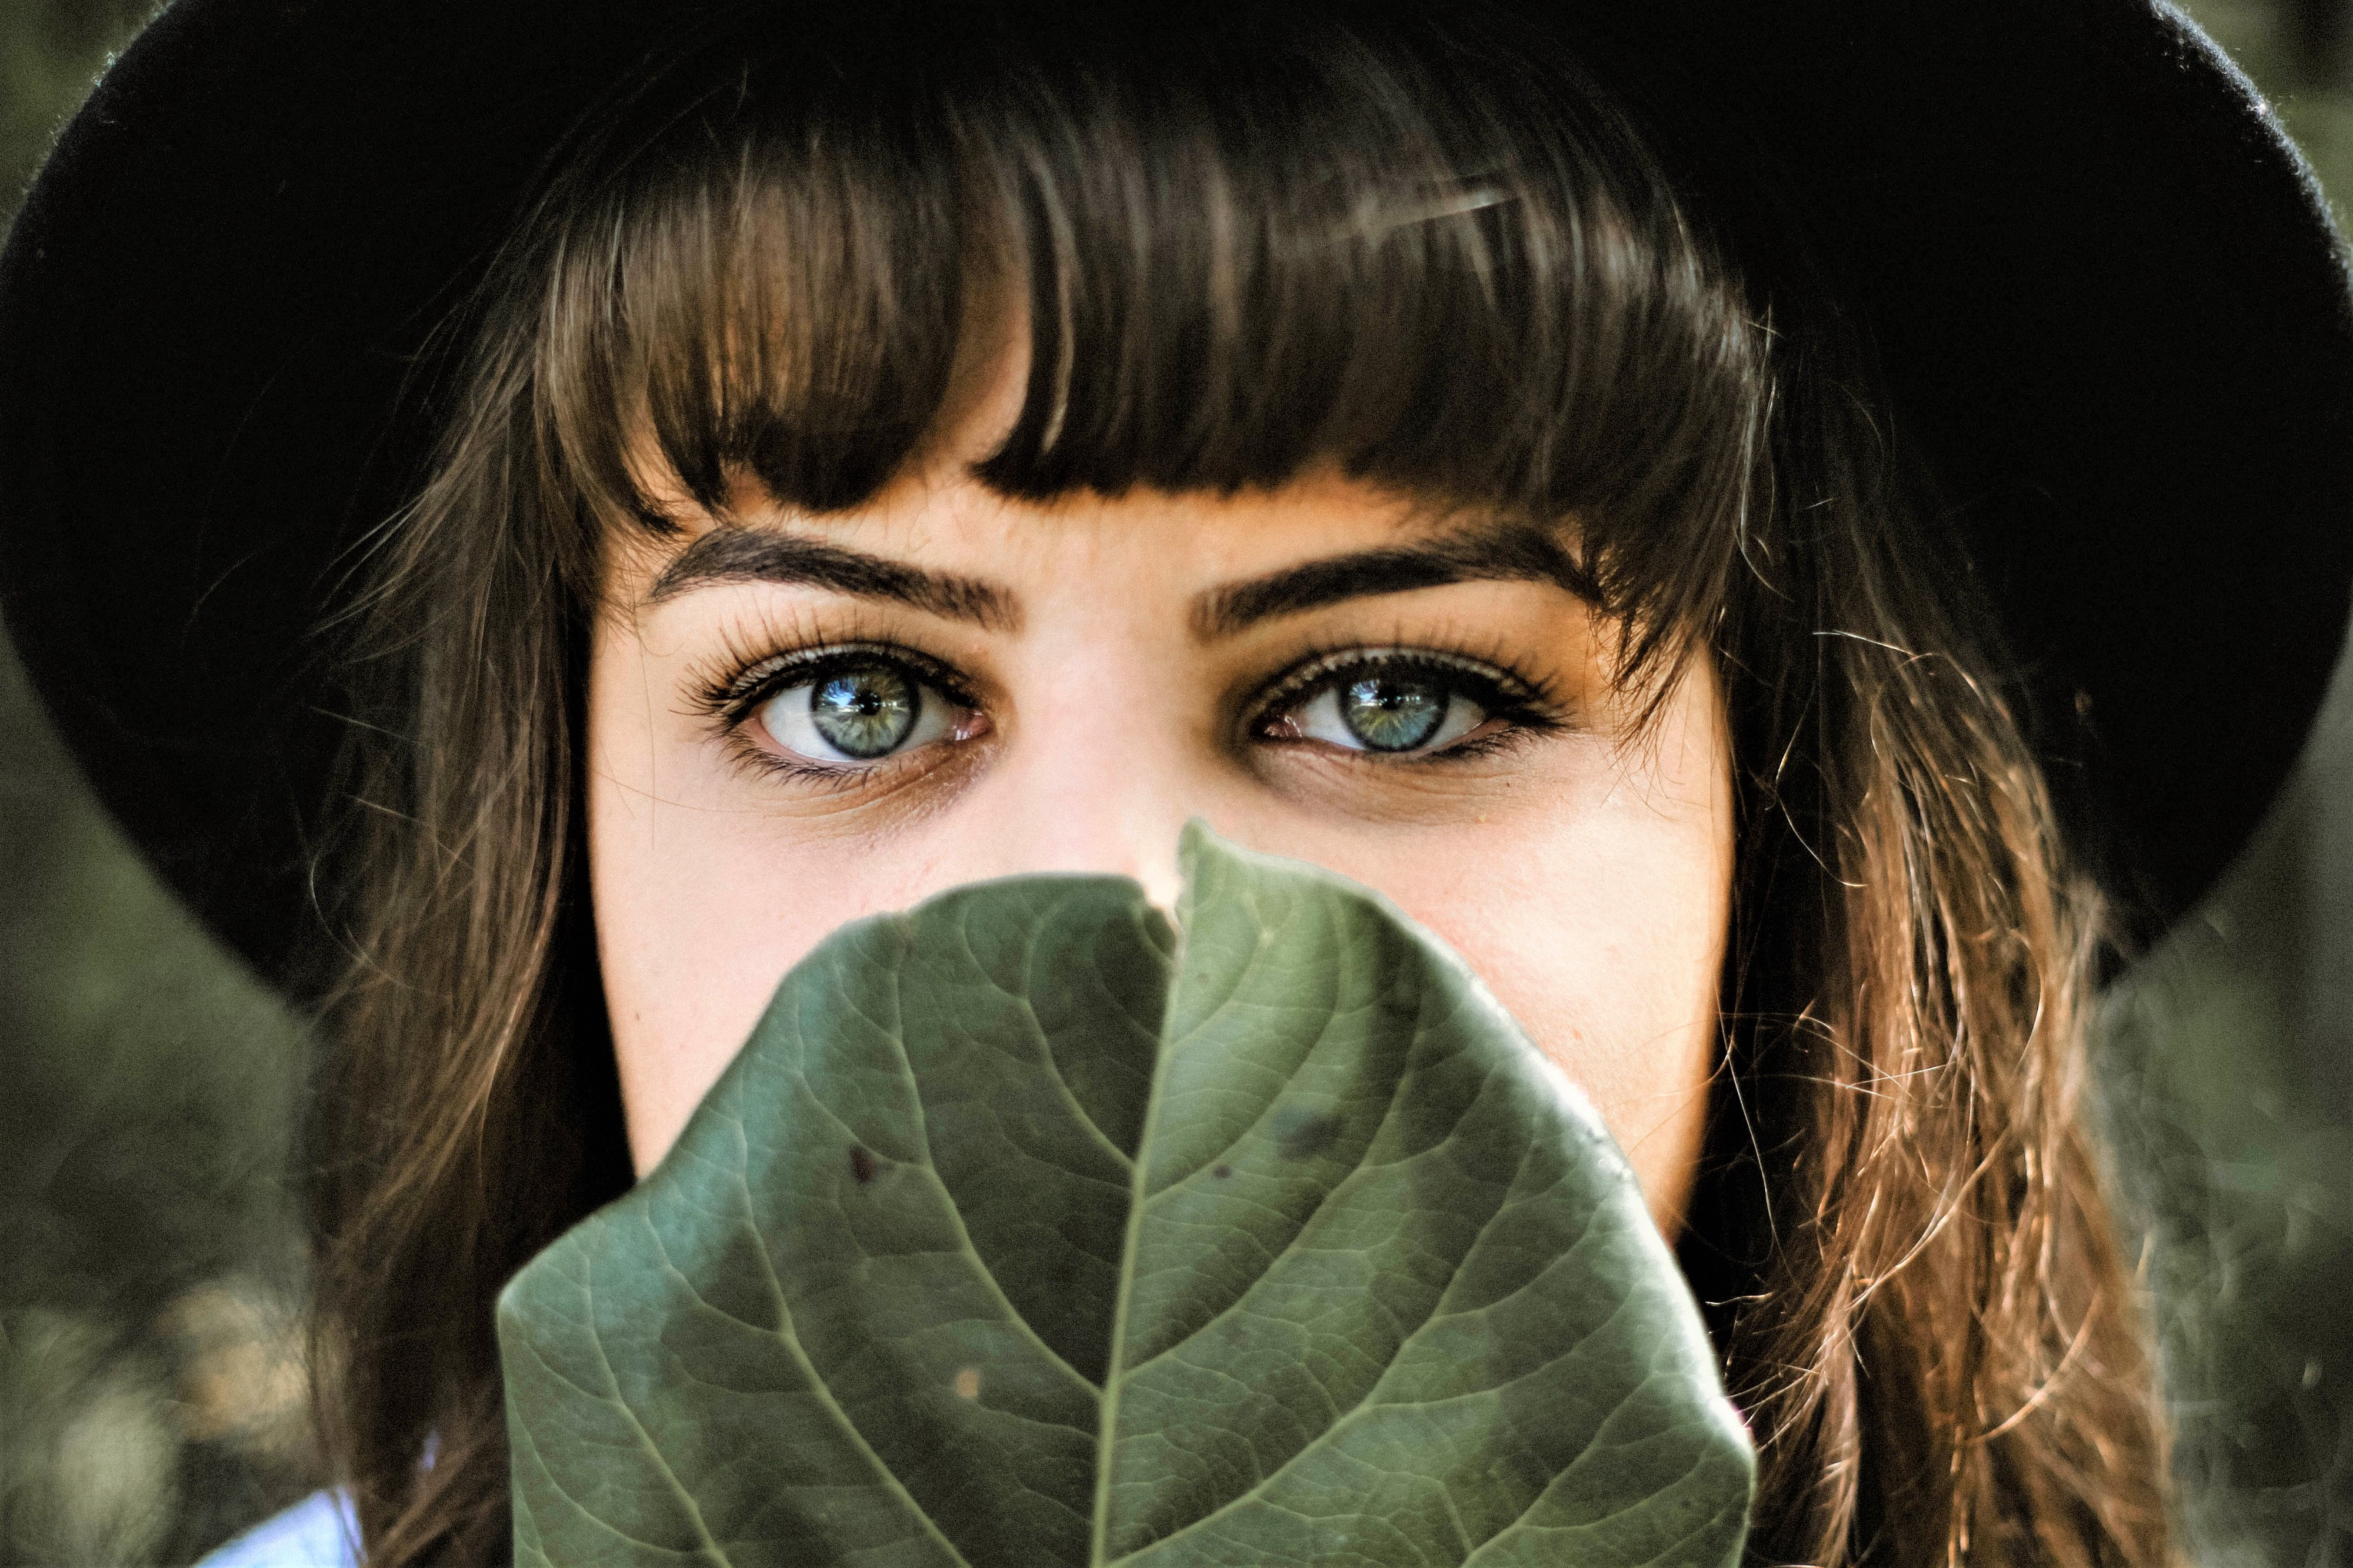 girl with brown hair and green eyes wearing dark hat holding leaf in front of her face